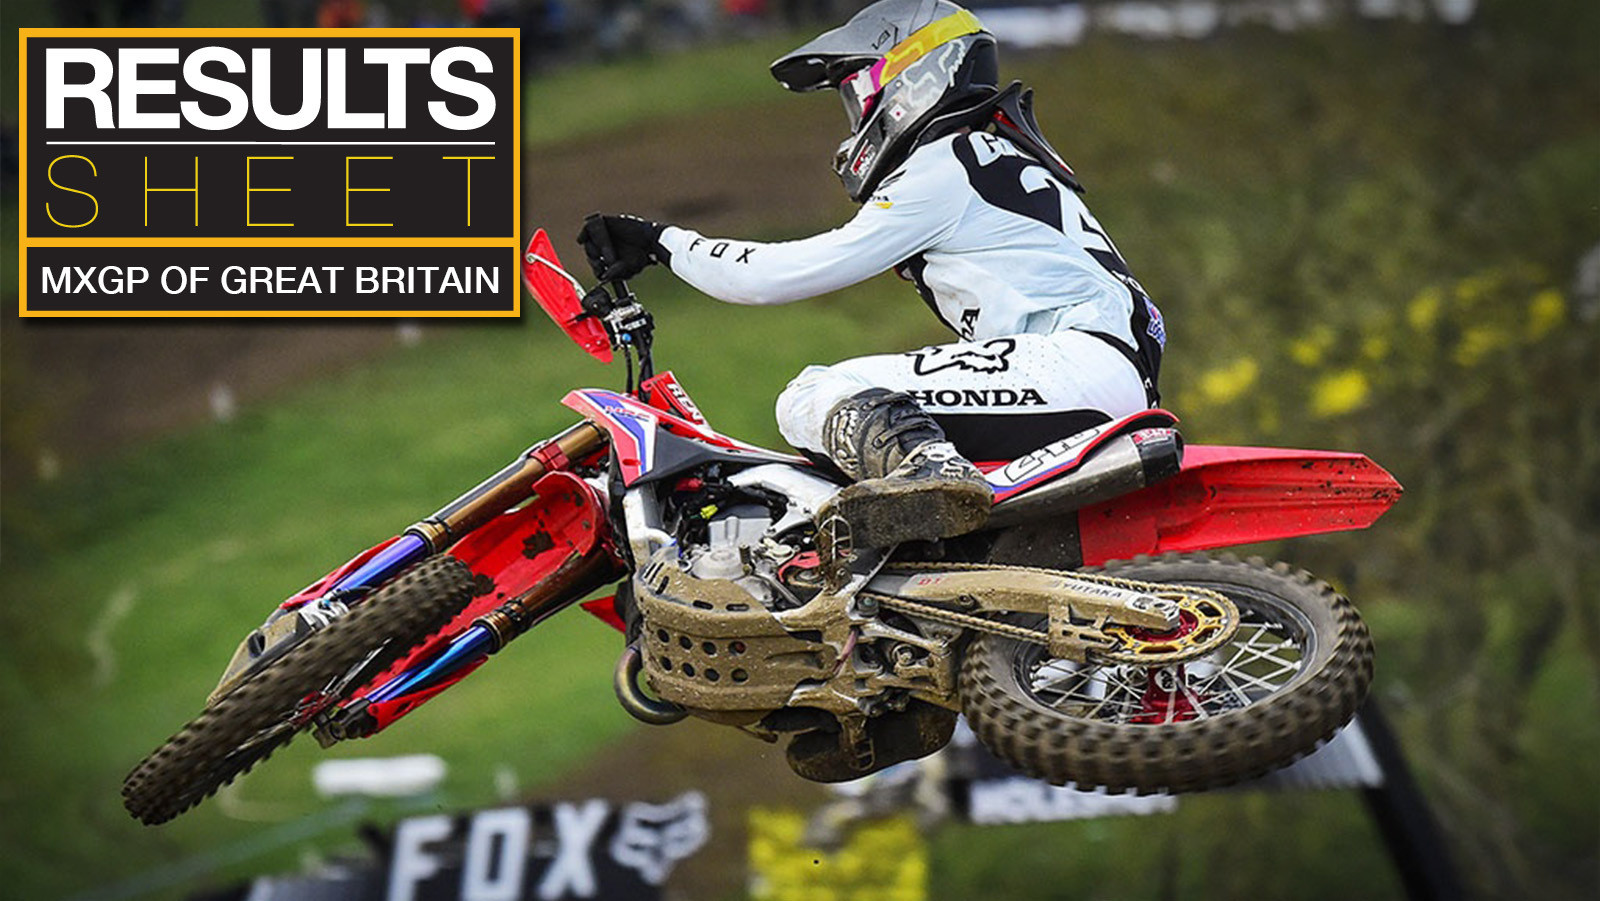 Results Sheet: 2019 MXGP of Great Britain